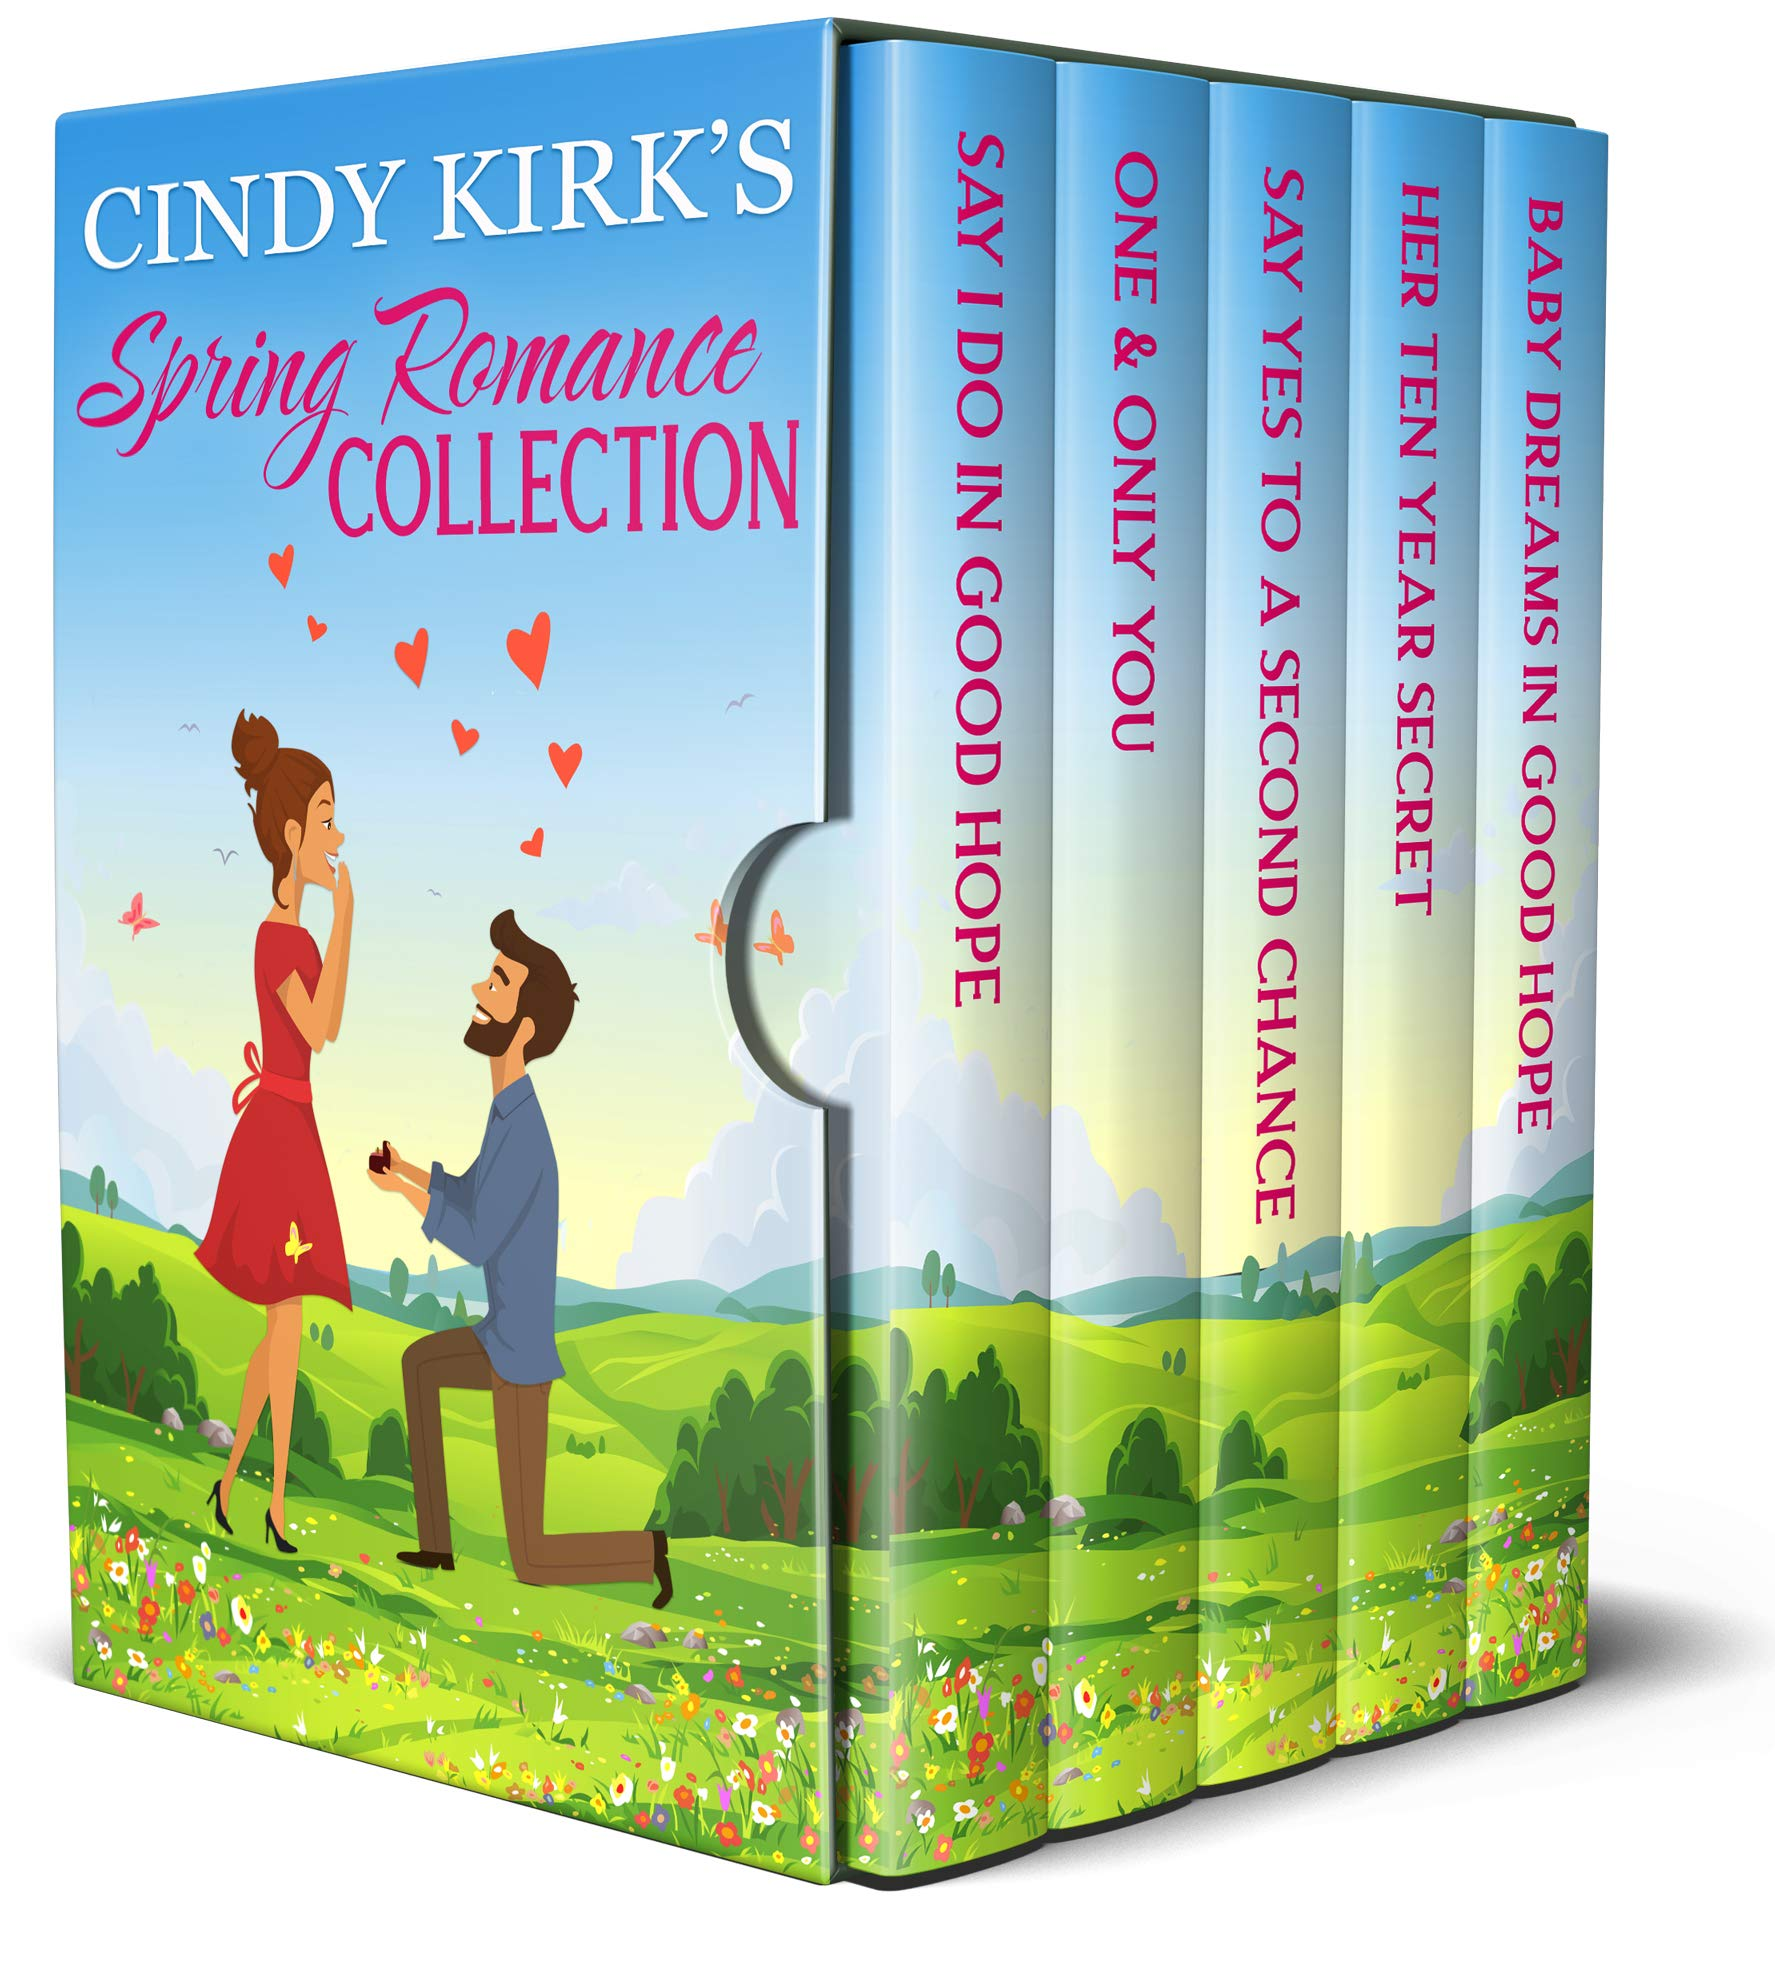 Cindy Kirk's Spring Romance Collection: An uplifting collection of heartwarming stories that will make you smile